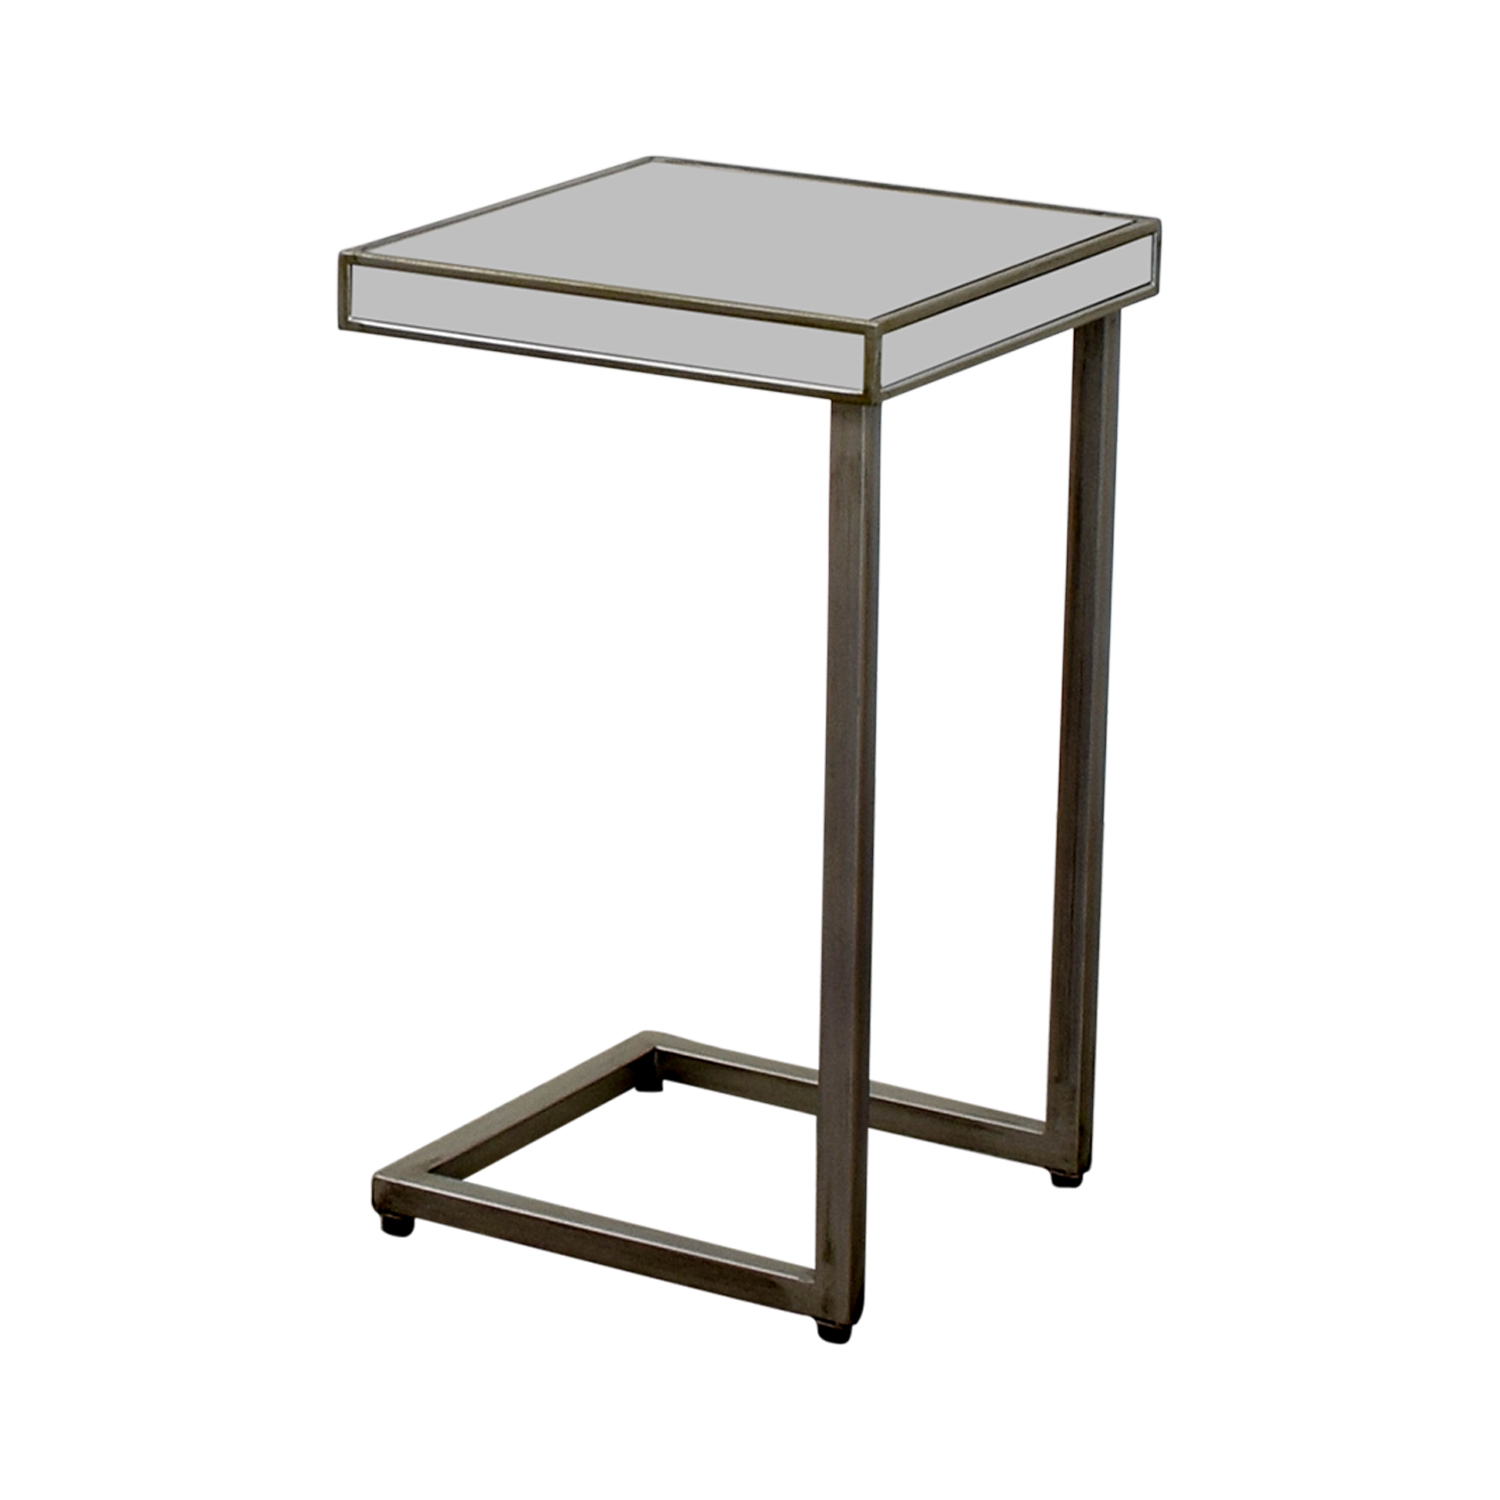 Pier 1 Imports Pier 1 Imports Hayworth Silver C-Table in Mirror dimensions